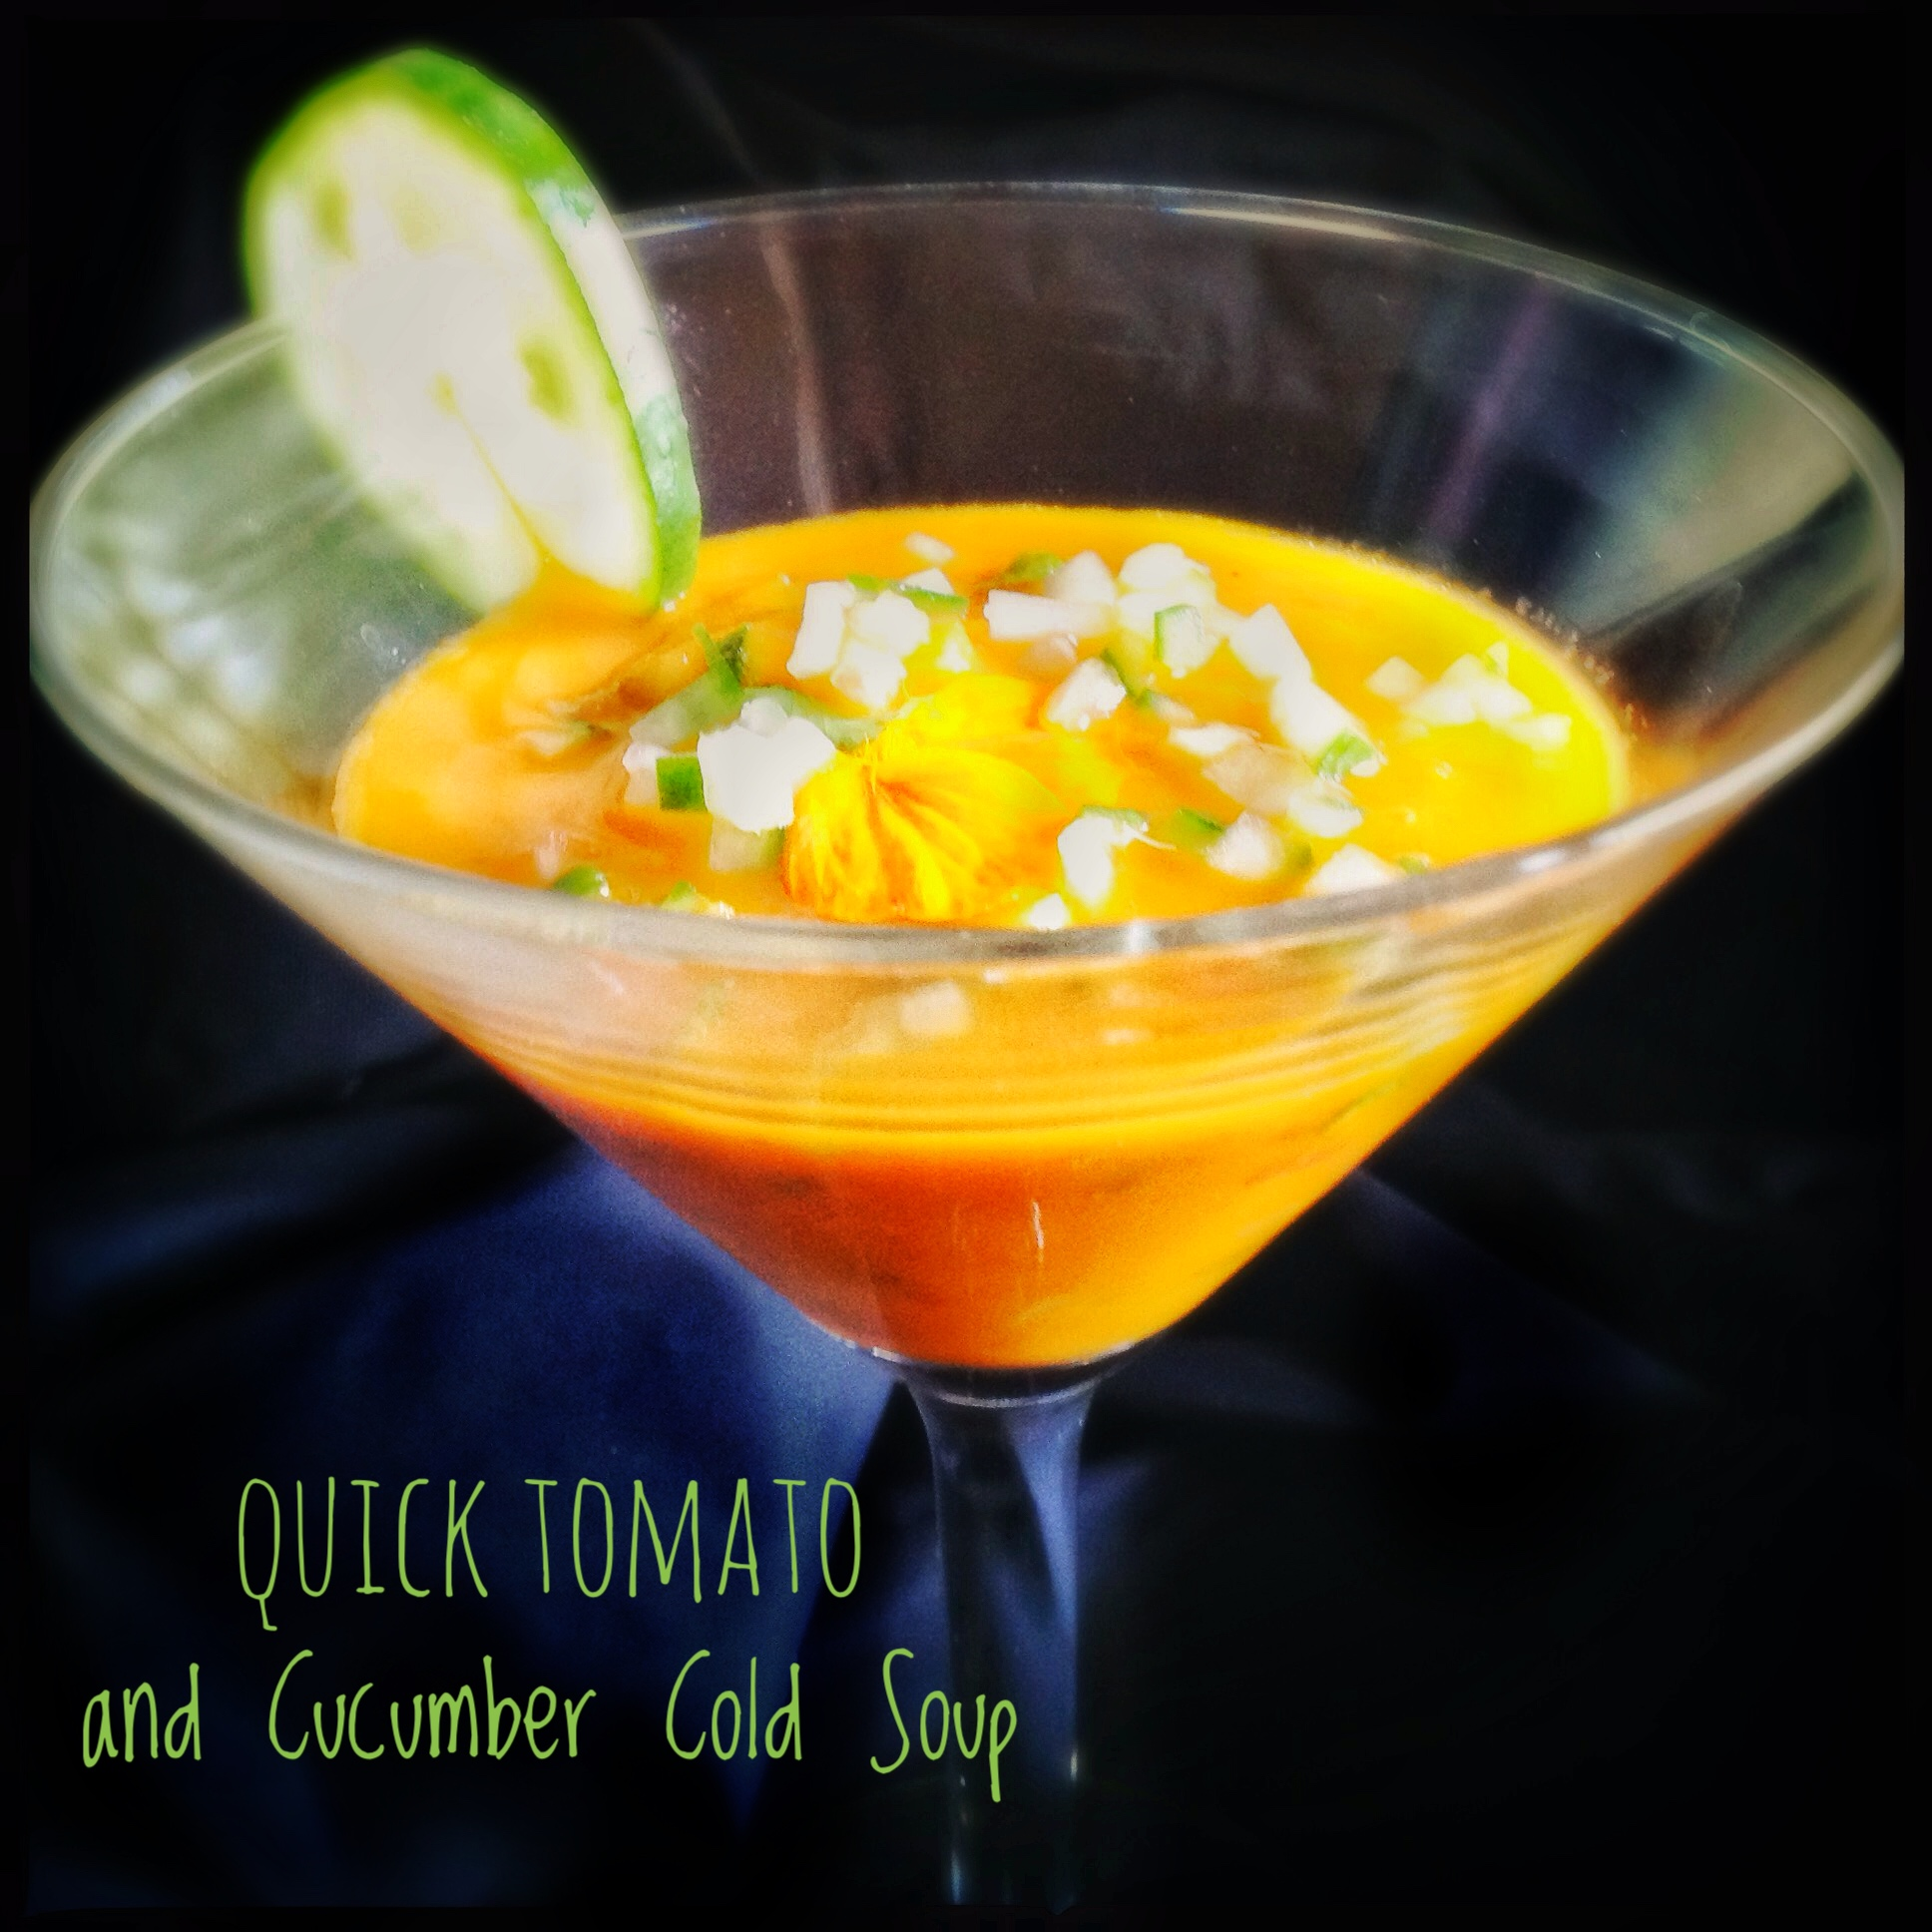 Quick Tomato and Cucumber Cold Soup